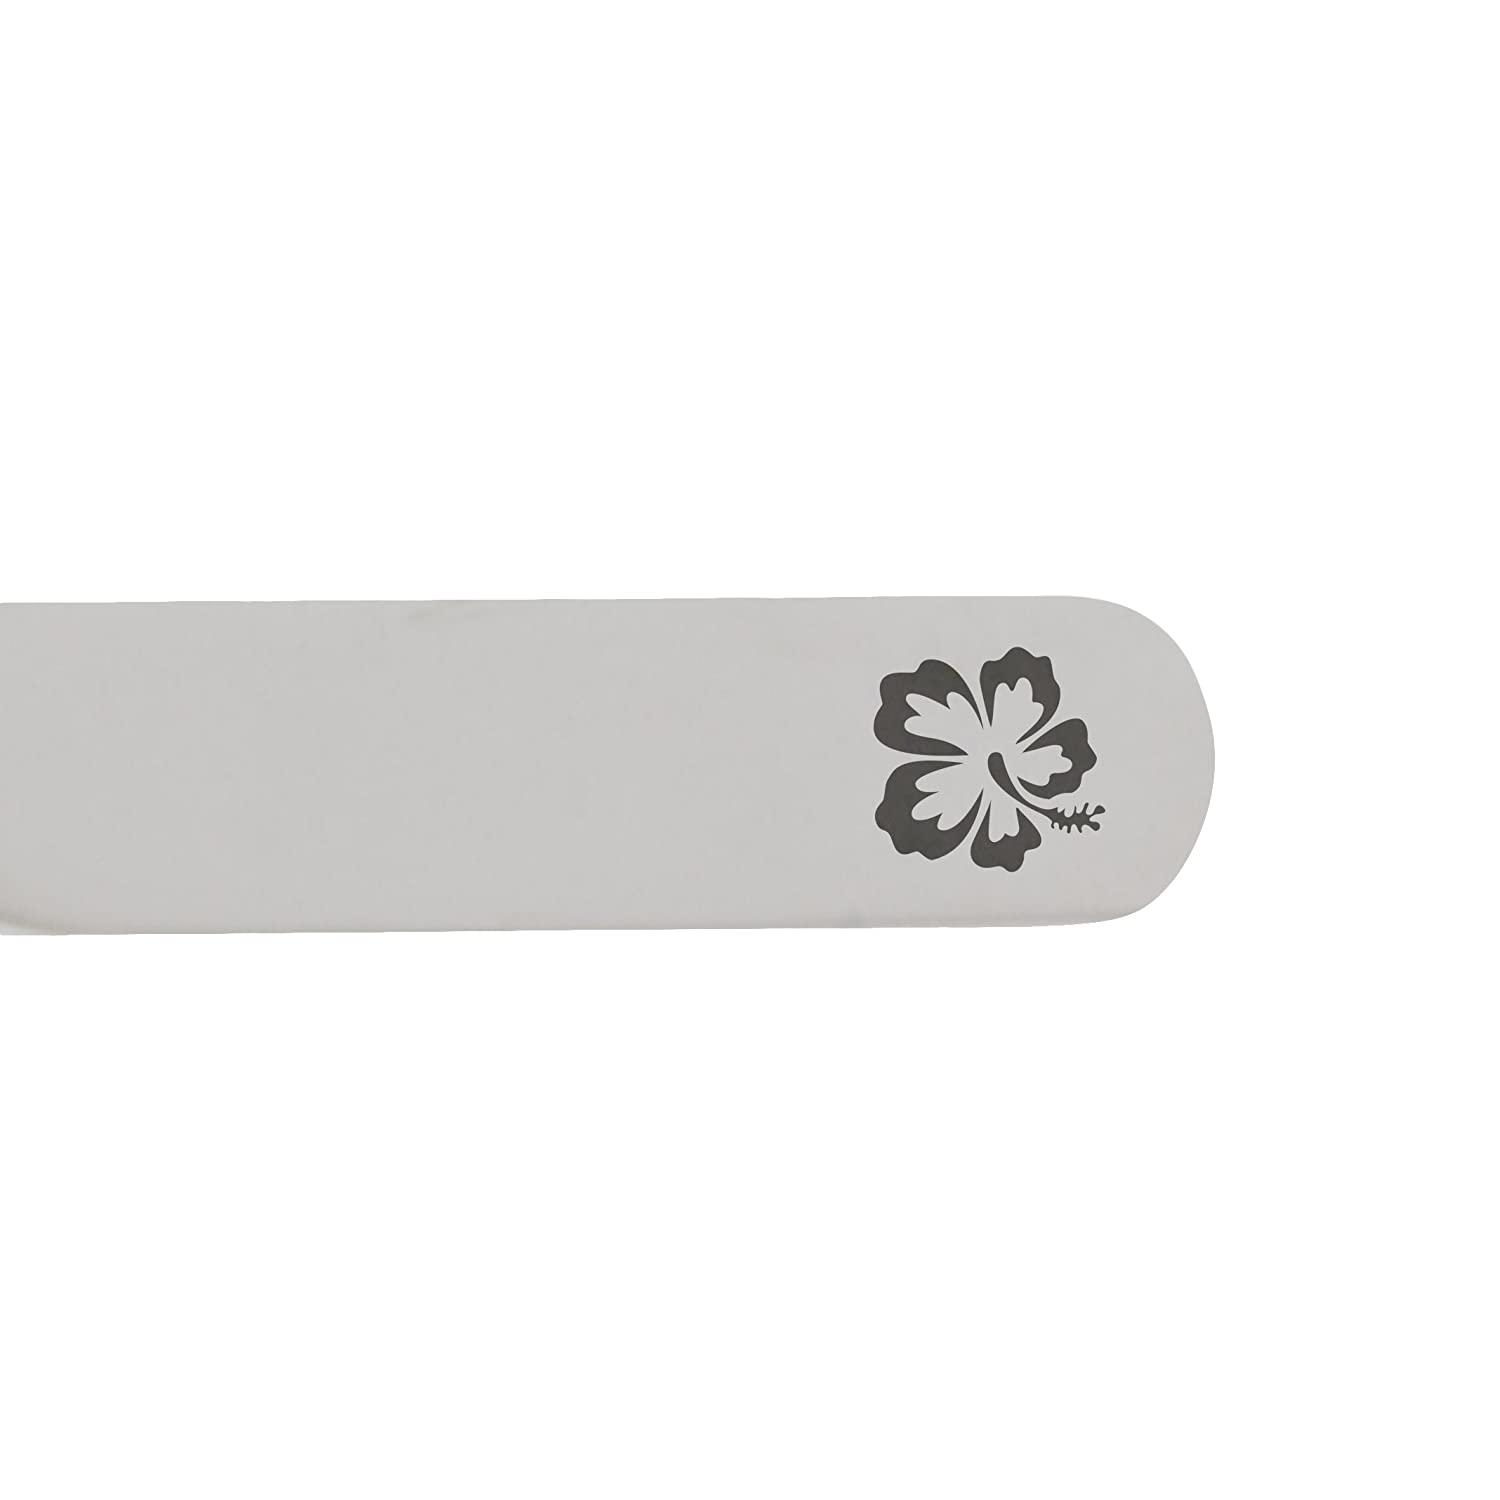 2.5 Inch Metal Collar Stiffeners Made In USA MODERN GOODS SHOP Stainless Steel Collar Stays With Laser Engraved Hibiscus Design